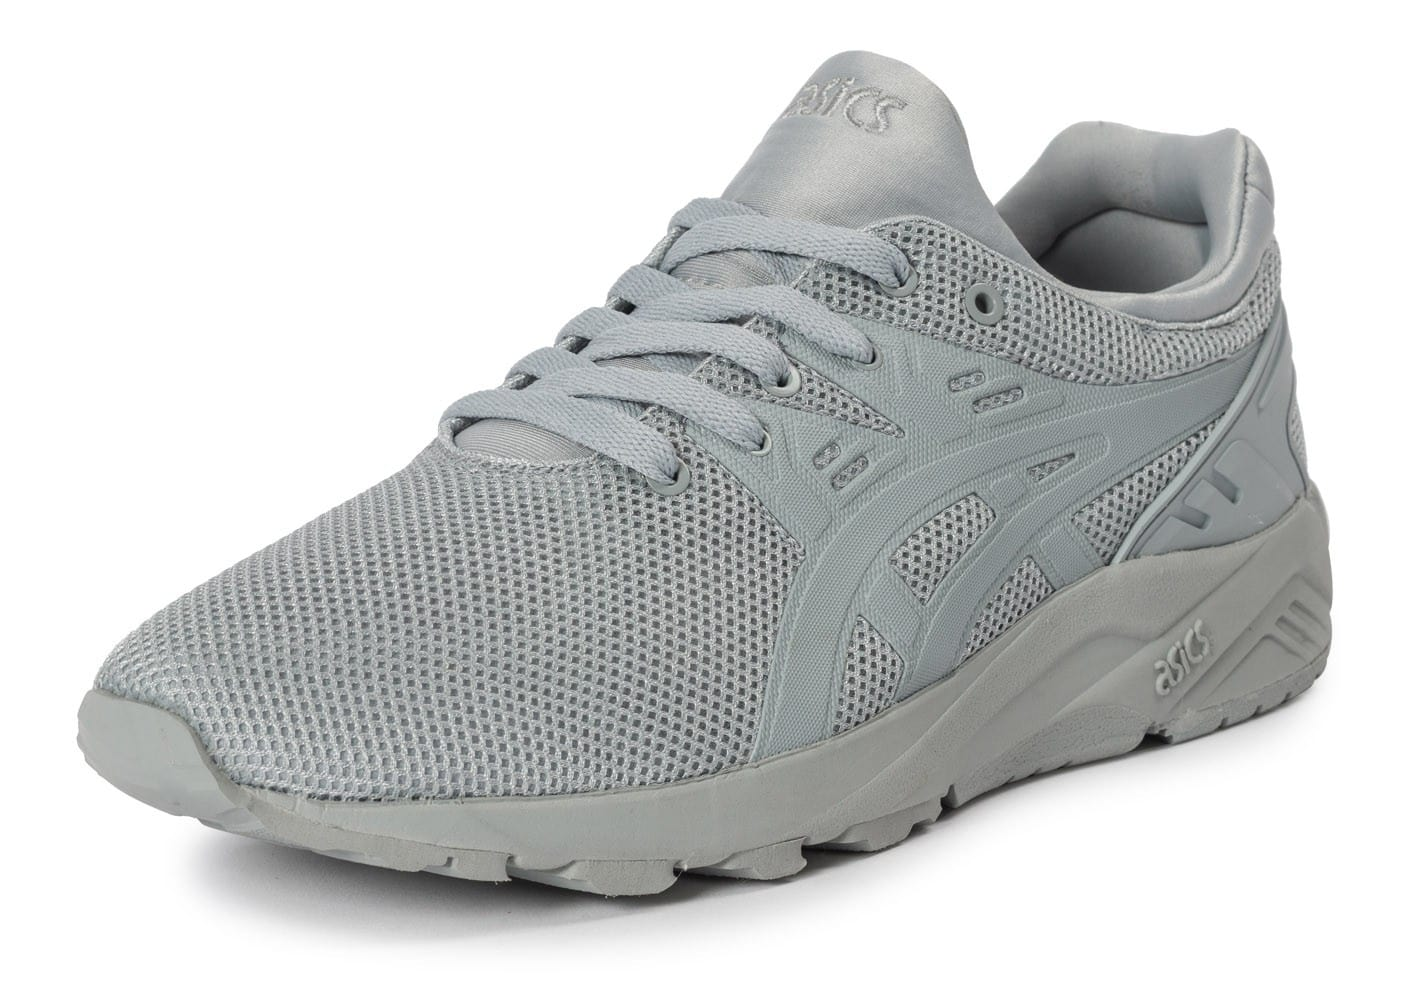 ... Chaussures Asics Gel Kayano Trainer Evo grise vue avant ...